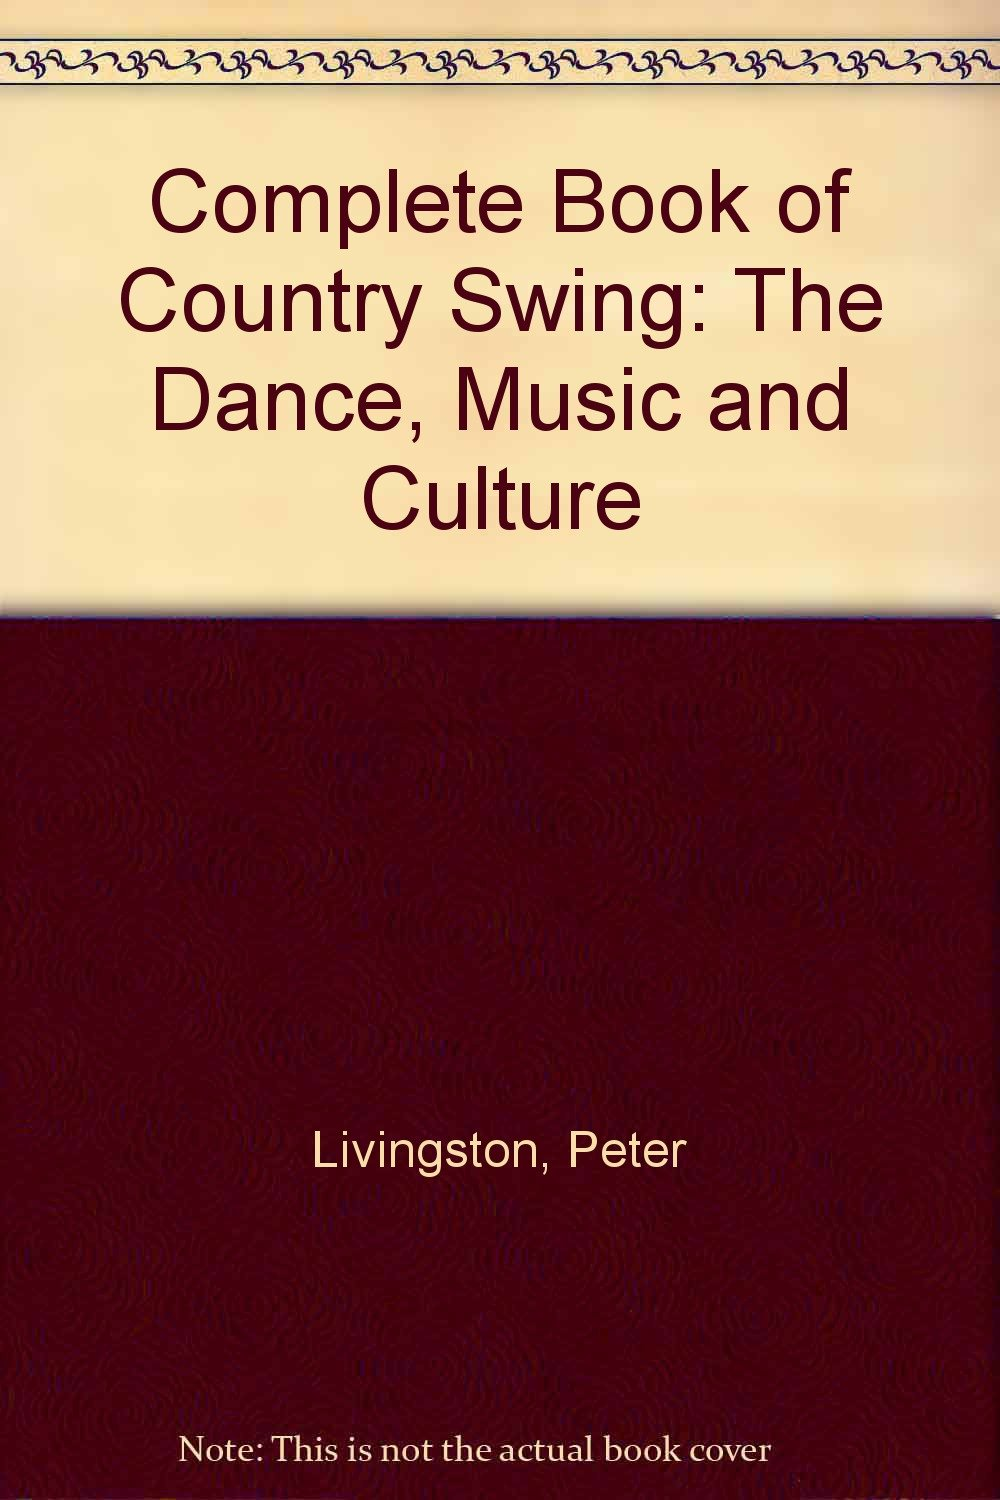 Complete Book of Country Swing: The Dance, Music and Culture, Livingston, Peter